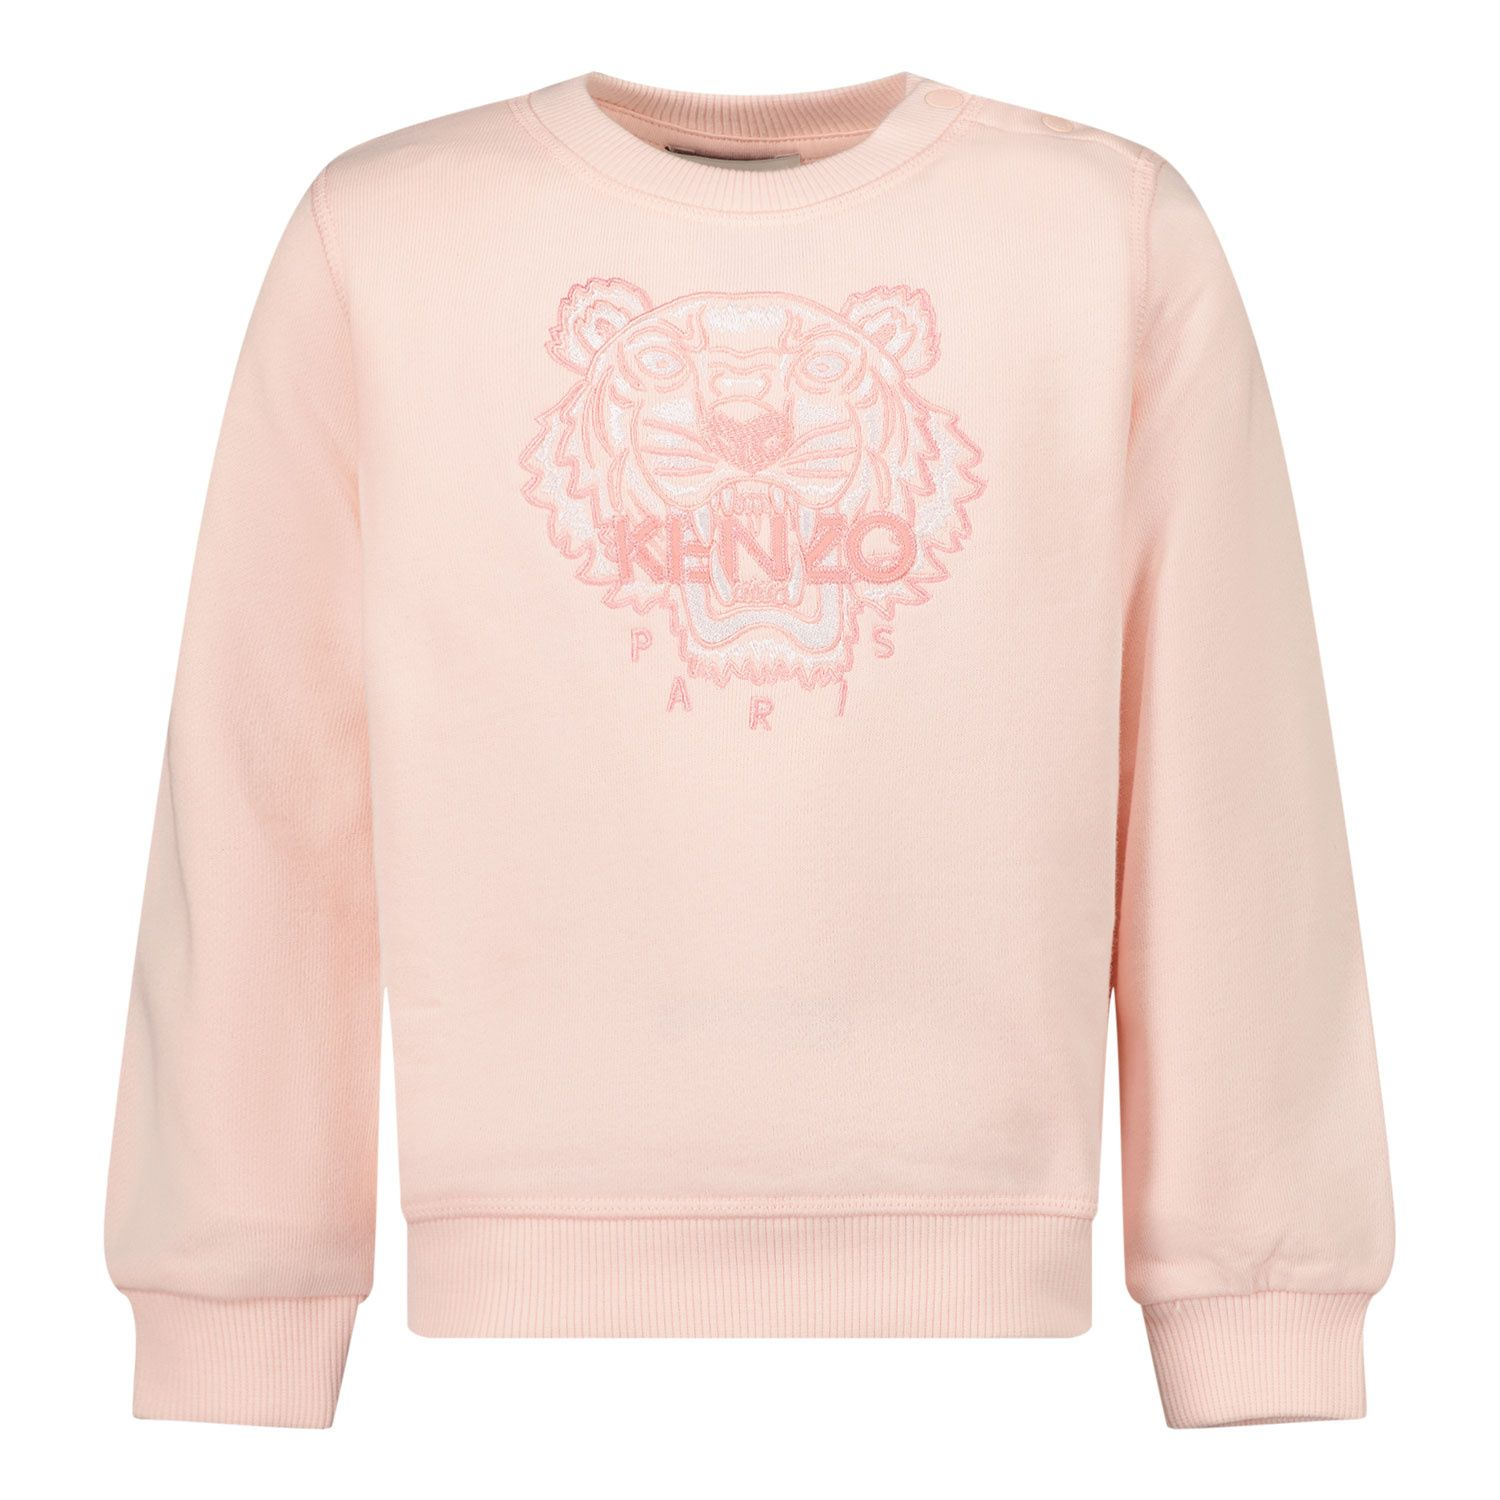 Picture of Kenzo K05059 baby sweater light pink